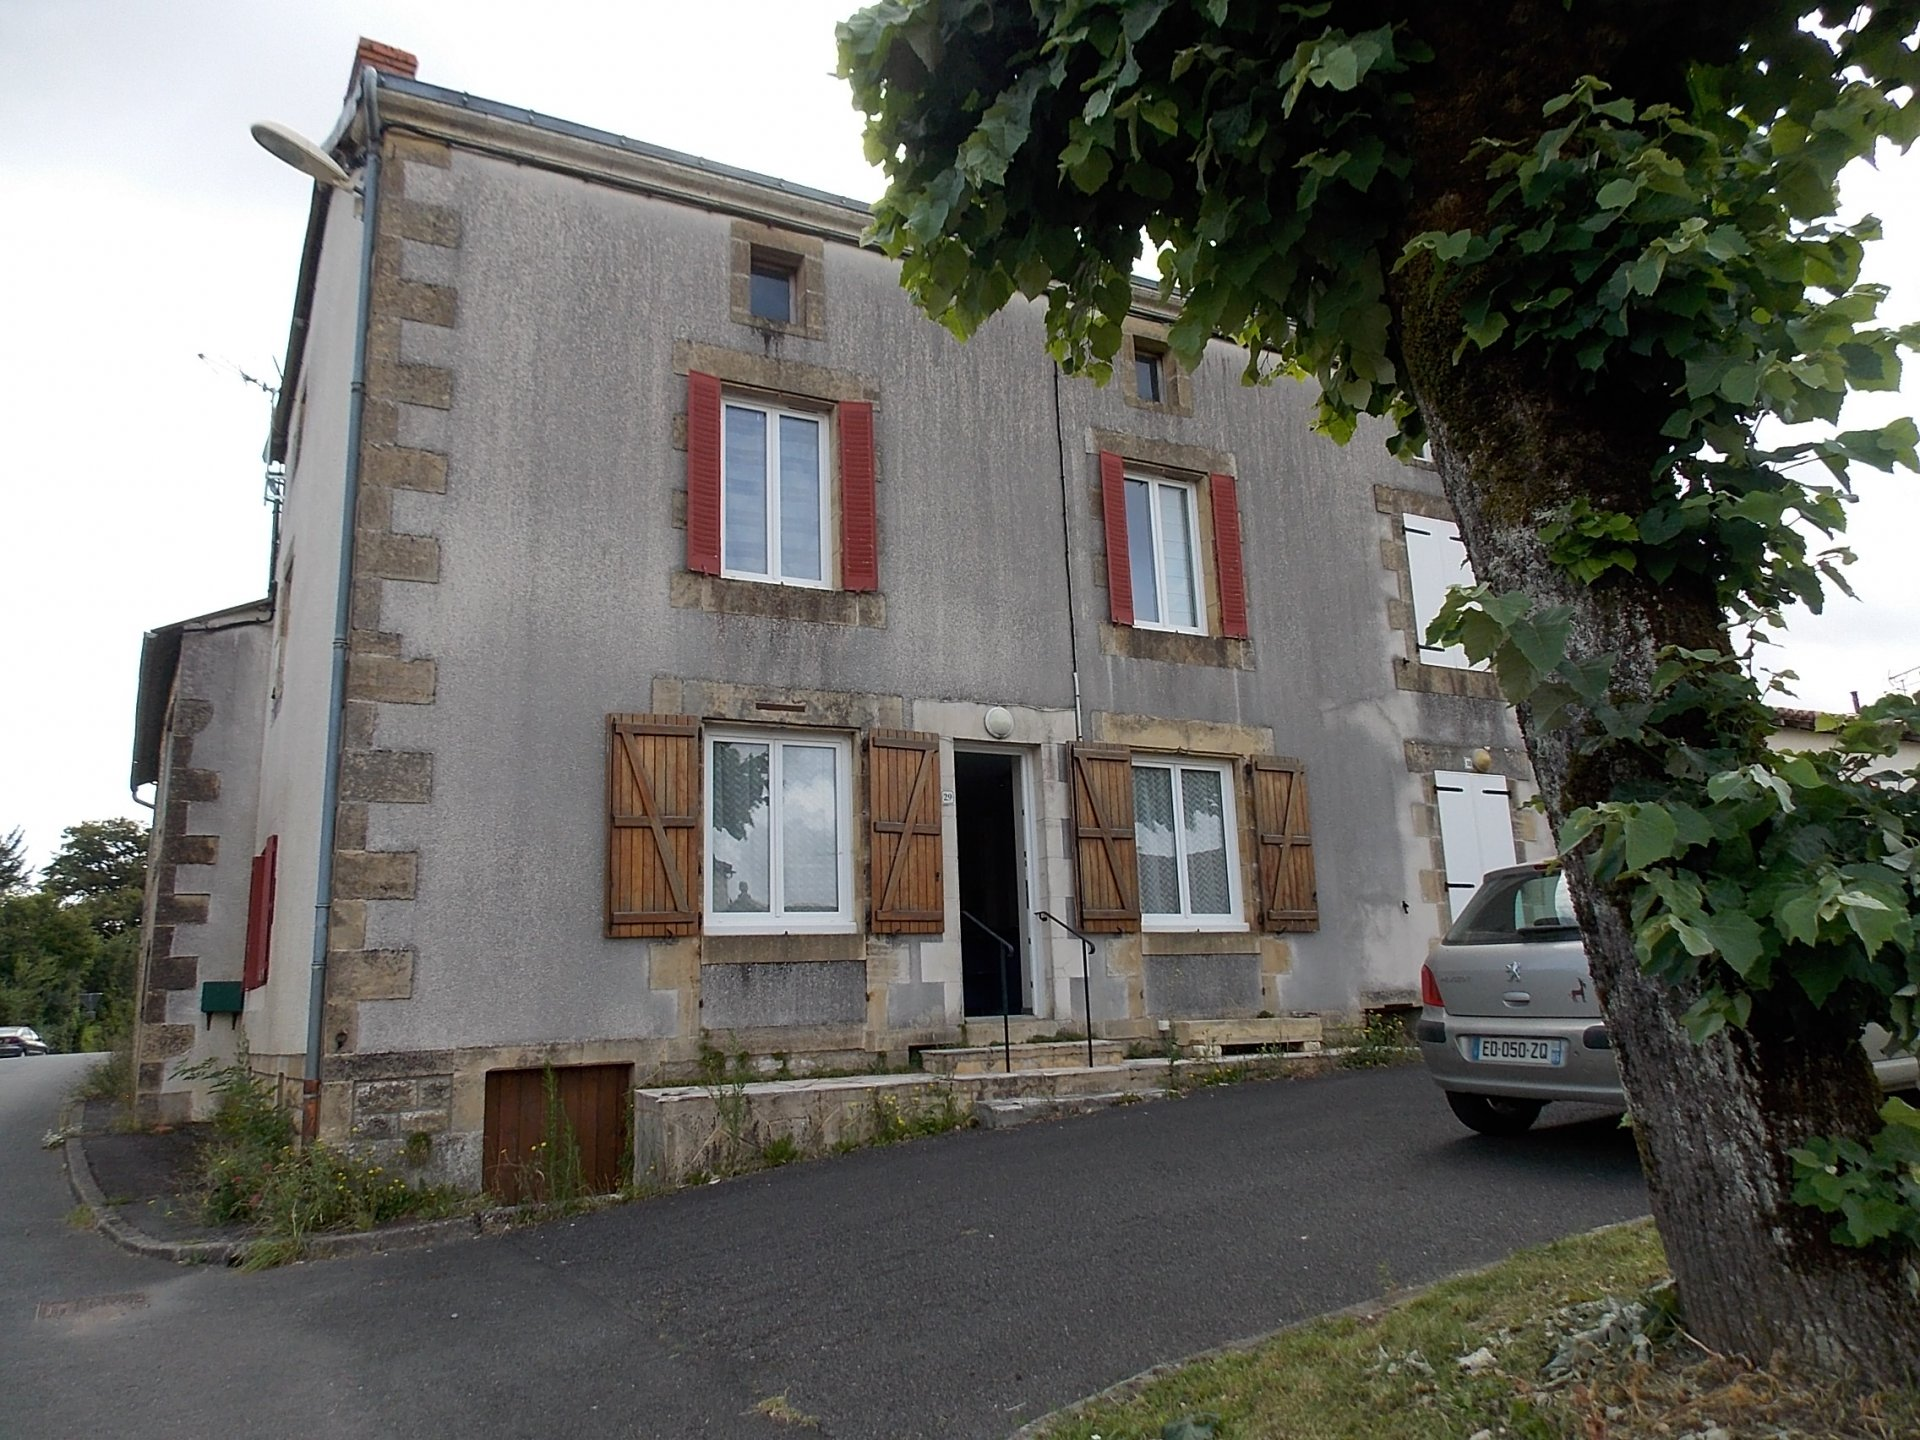 4 bed house in centre of pretty village